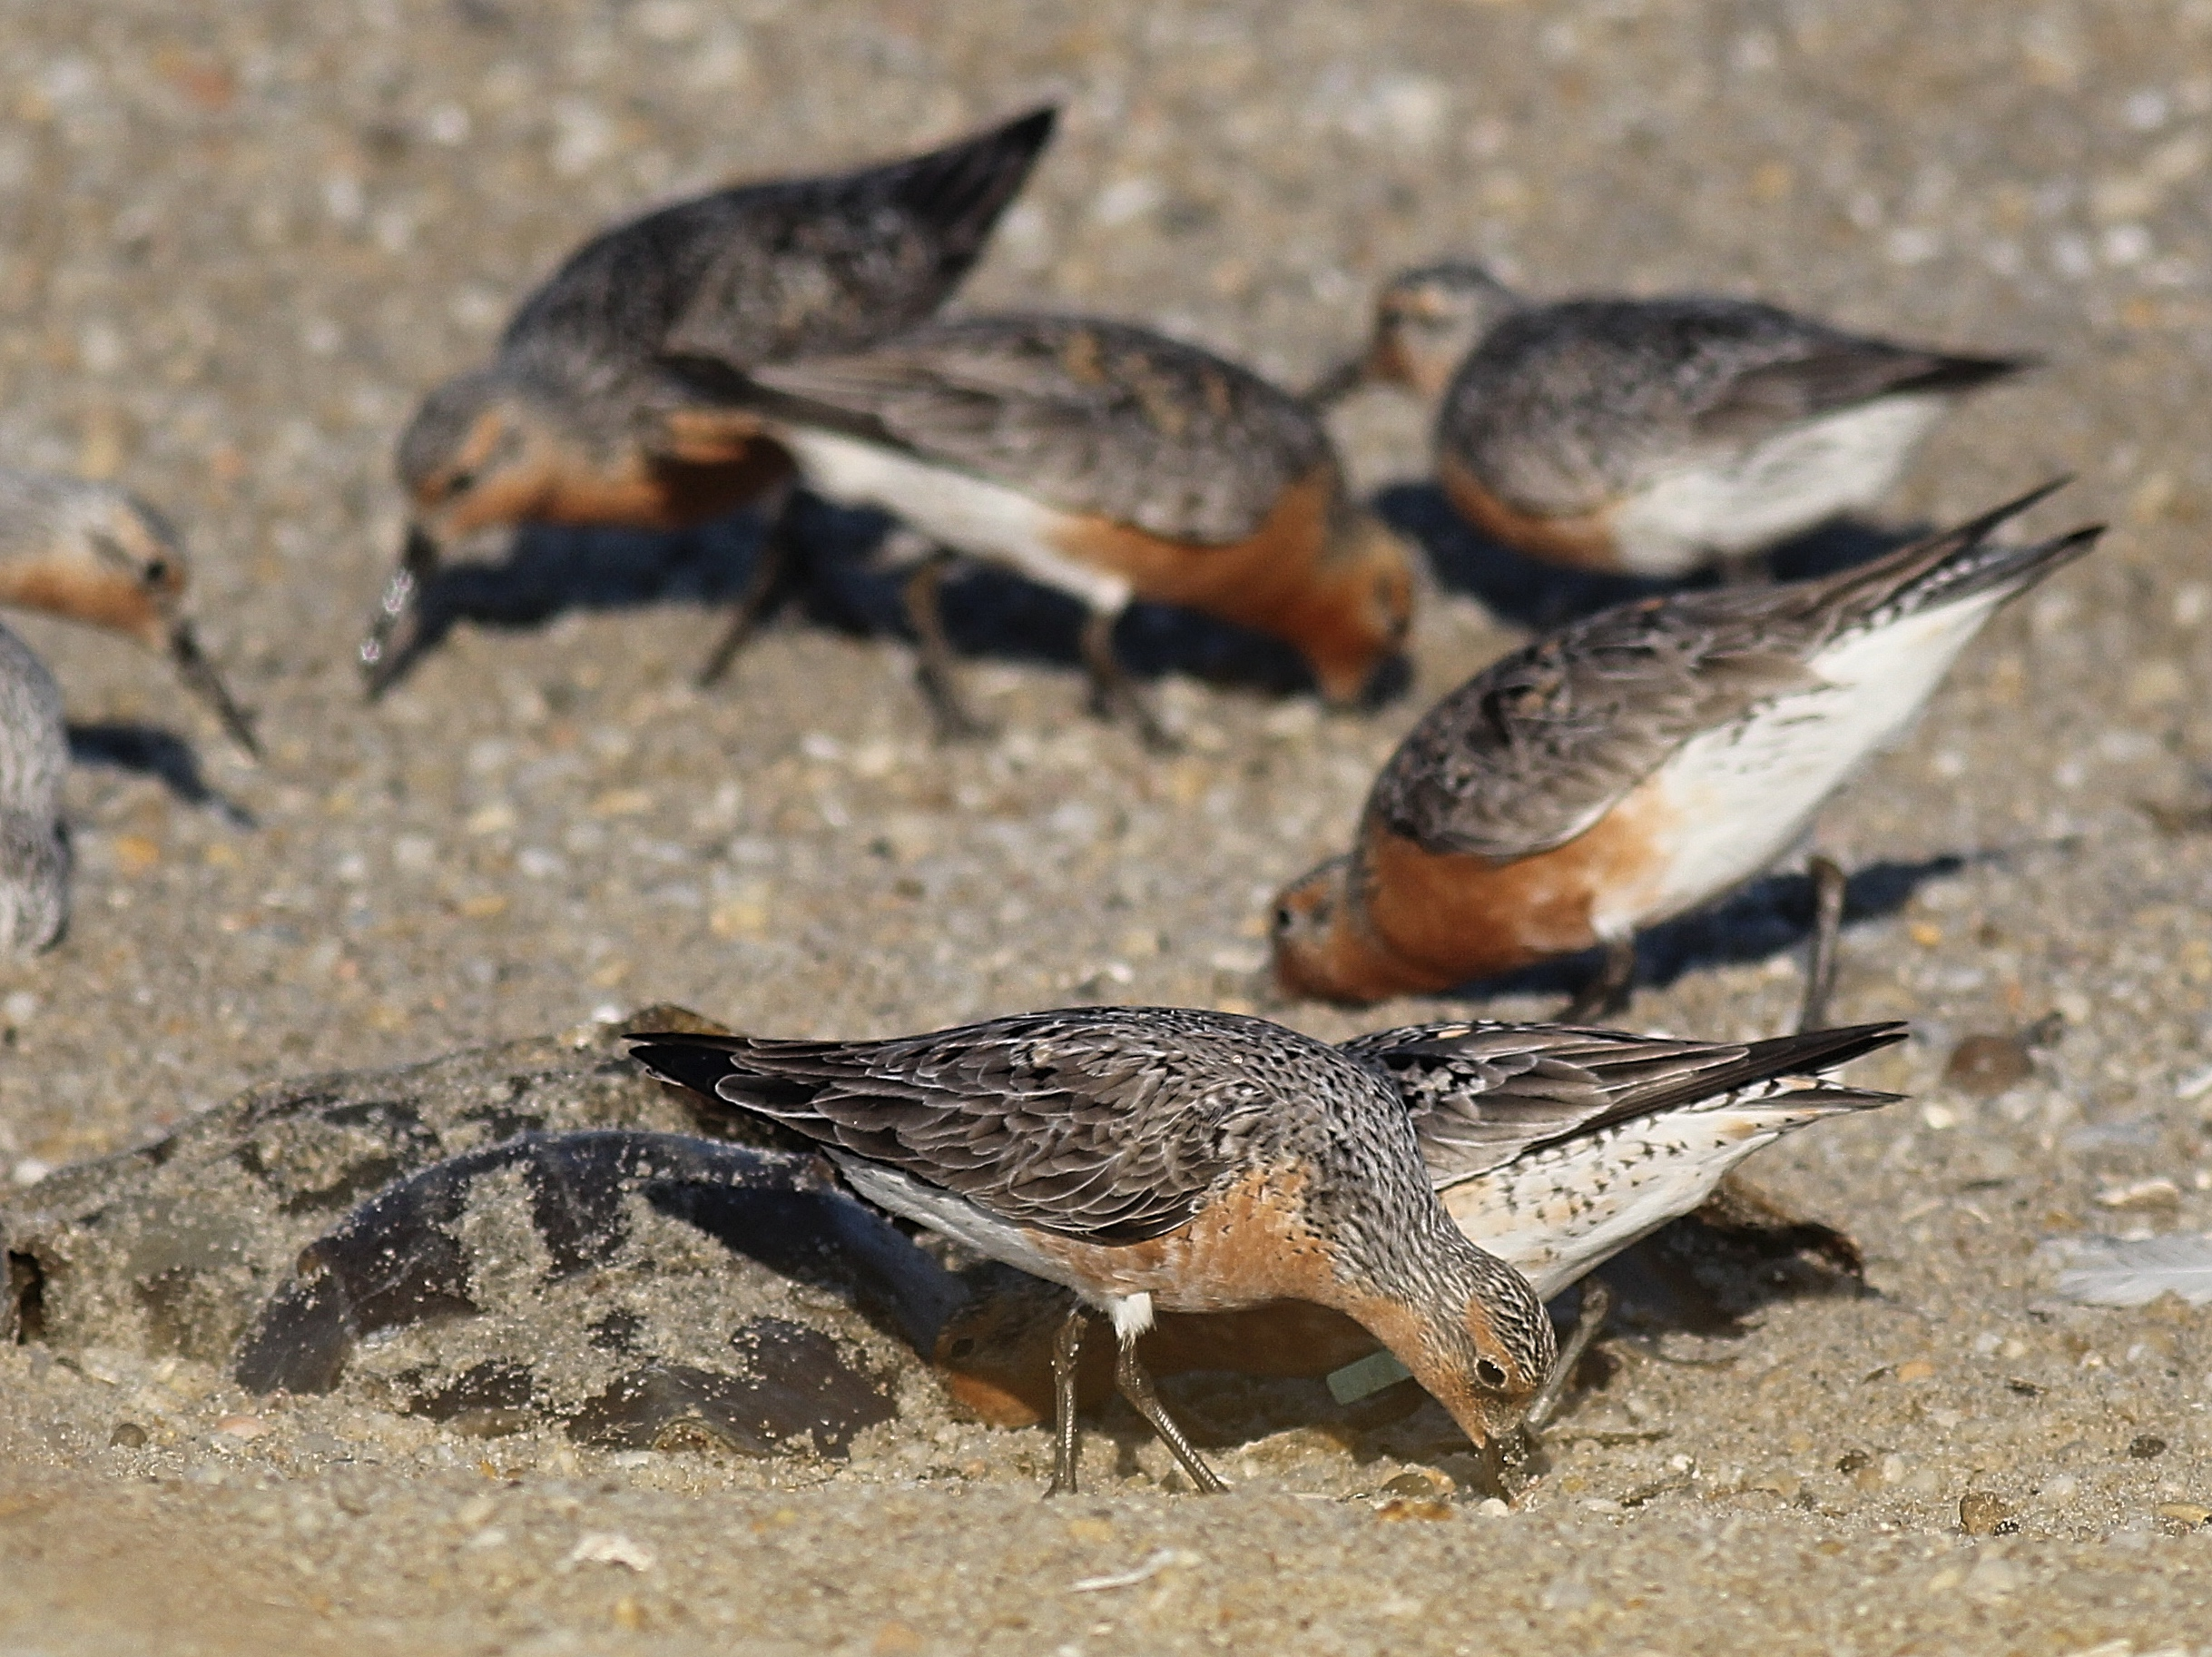 Red Knots foraging on Horseshoe crab eggs along Delaware Bay, NJ.